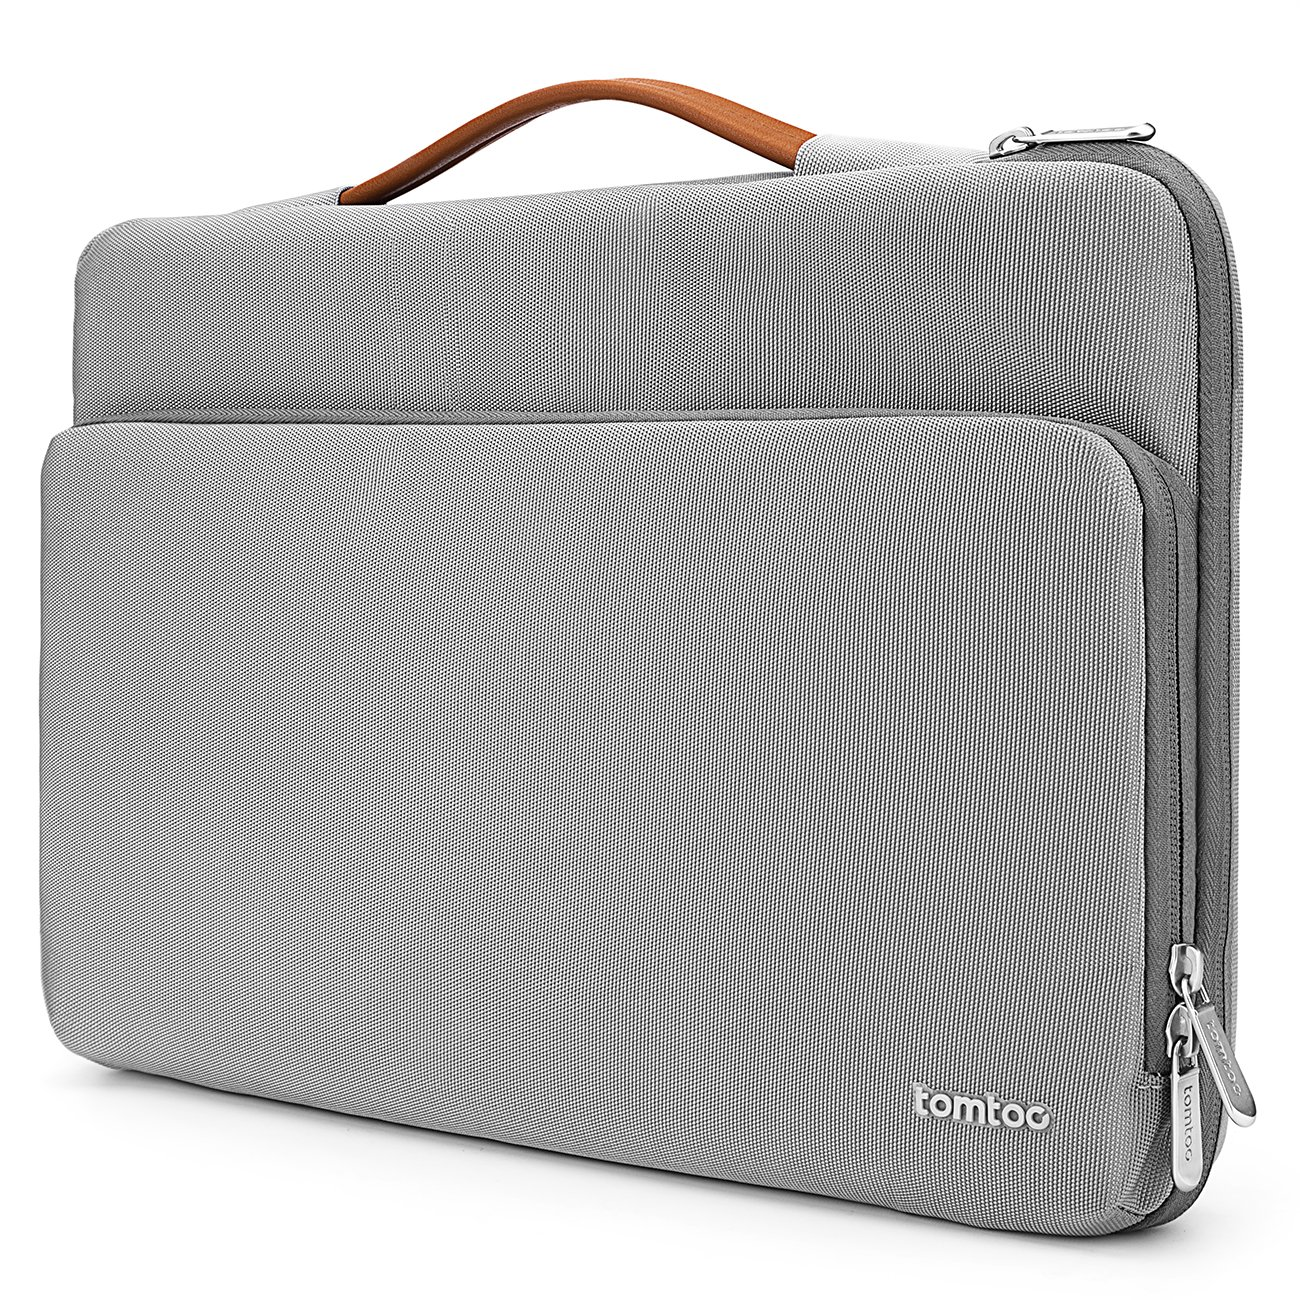 tomtoc 360° Protective Laptop Sleeve Case for 13.3-13.5 Inch MacBook Air | MacBook Pro Retina 2012-2015 | 13.5 Surface Book 2 2017 | Surface Laptop | HP Dell Acer Samsung Chromebook Tablet A14-C026